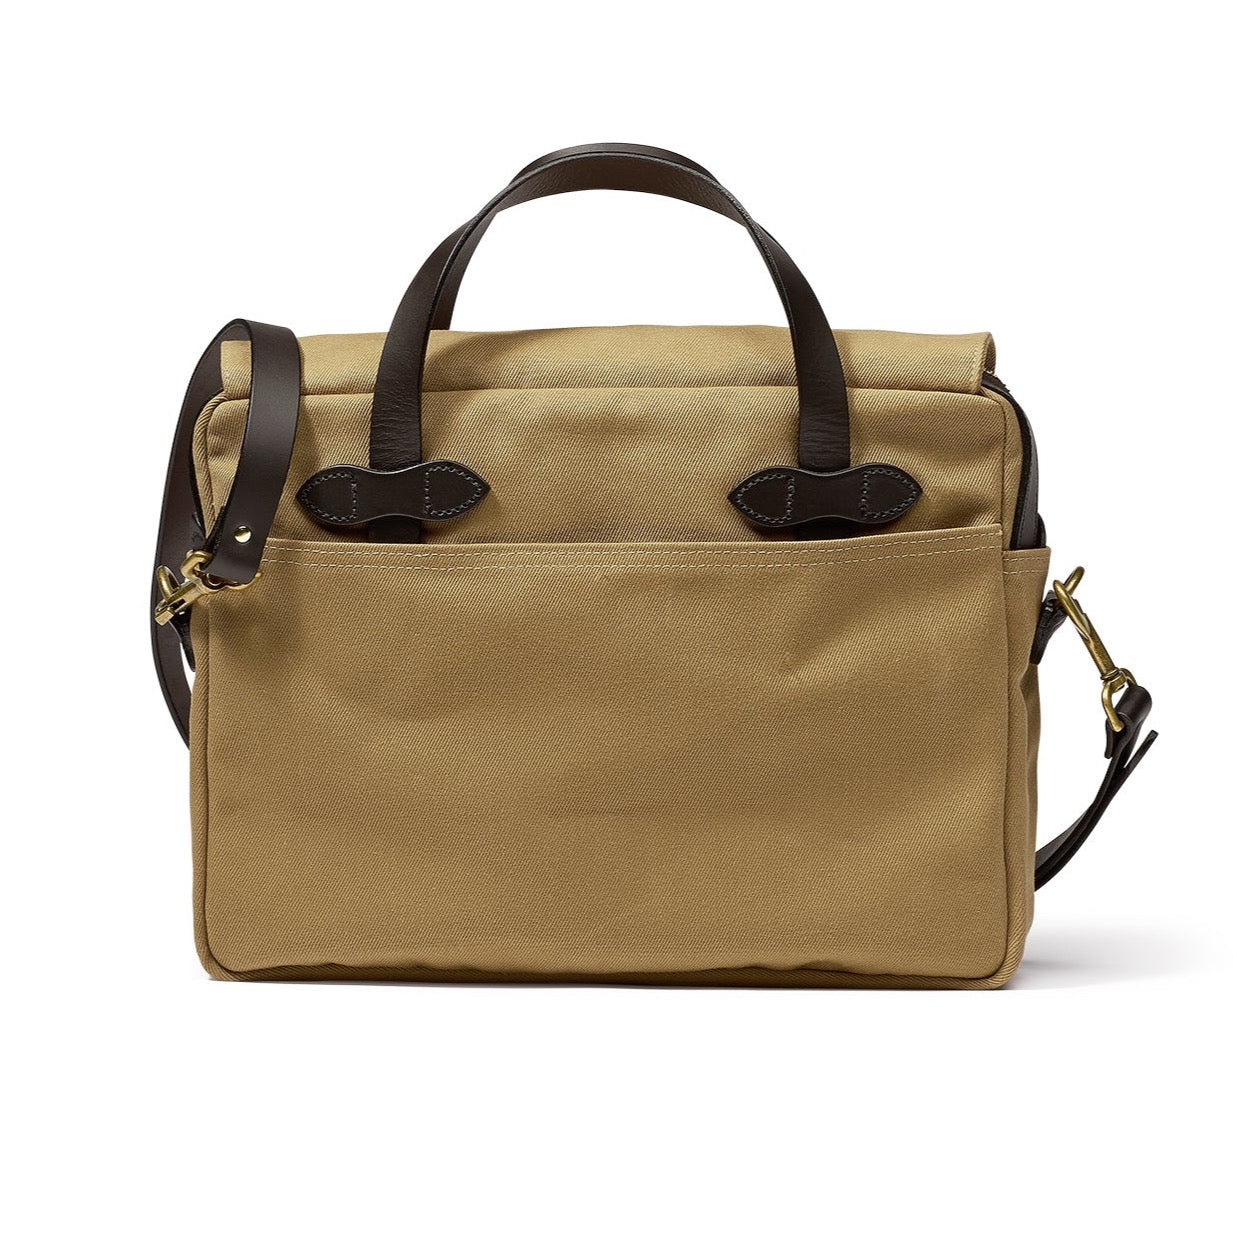 Filson - Bag, Original Briefcase, TAN